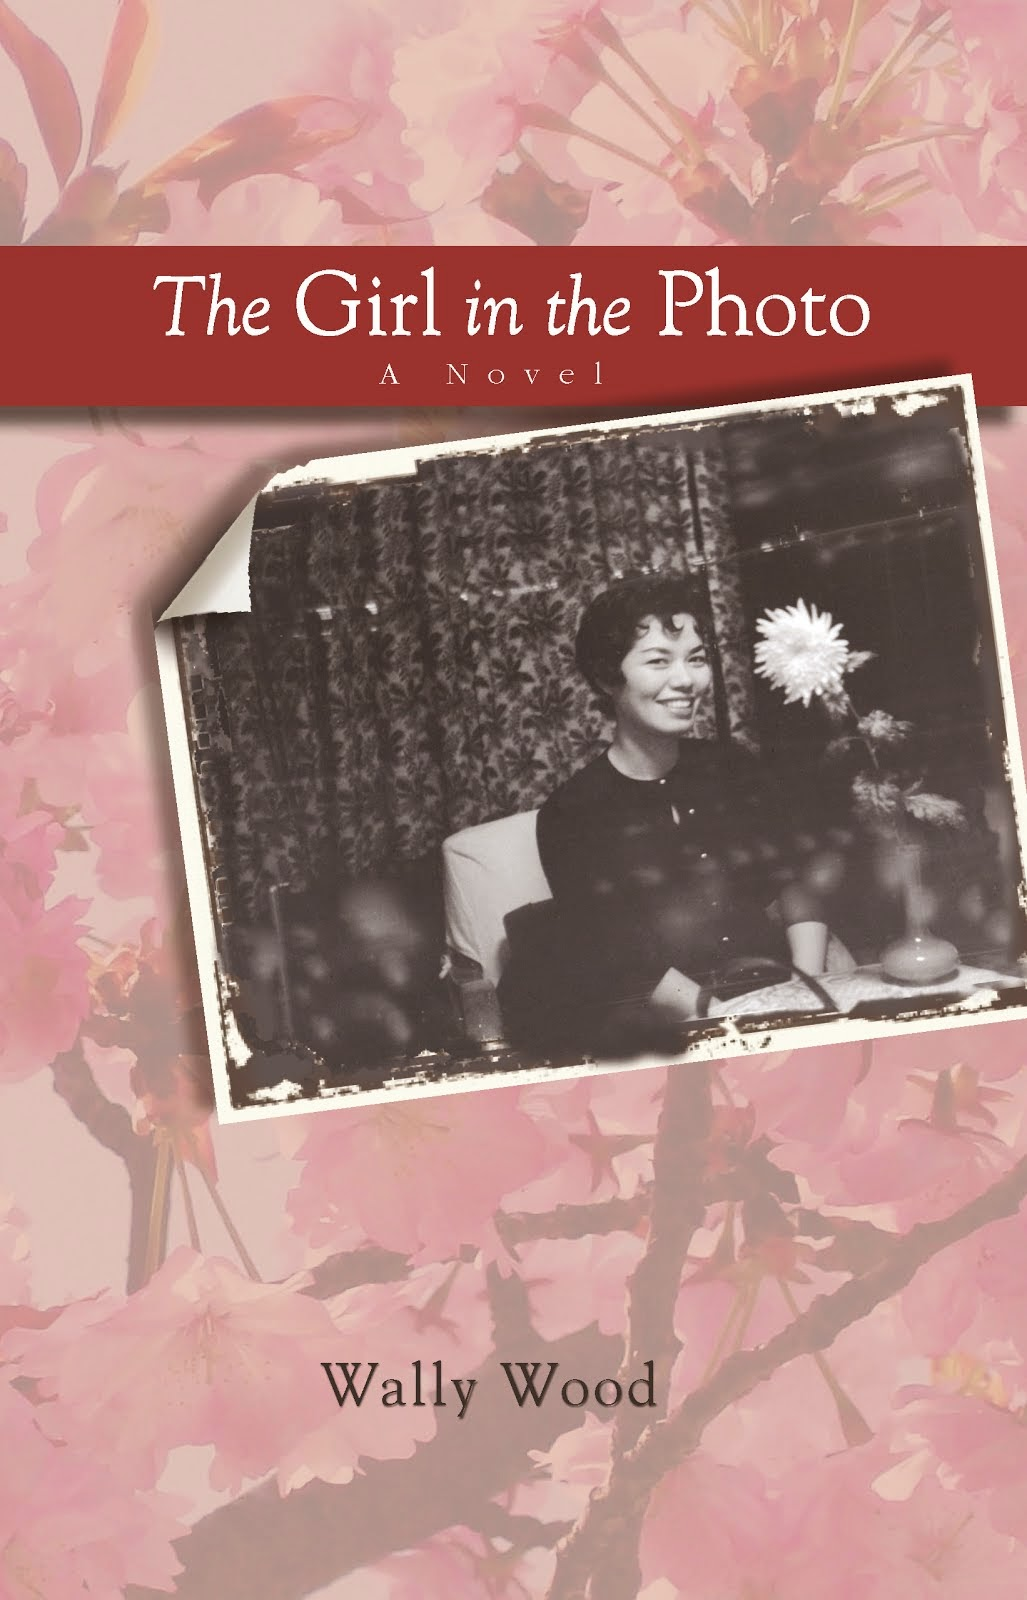 The Girl in the Photo